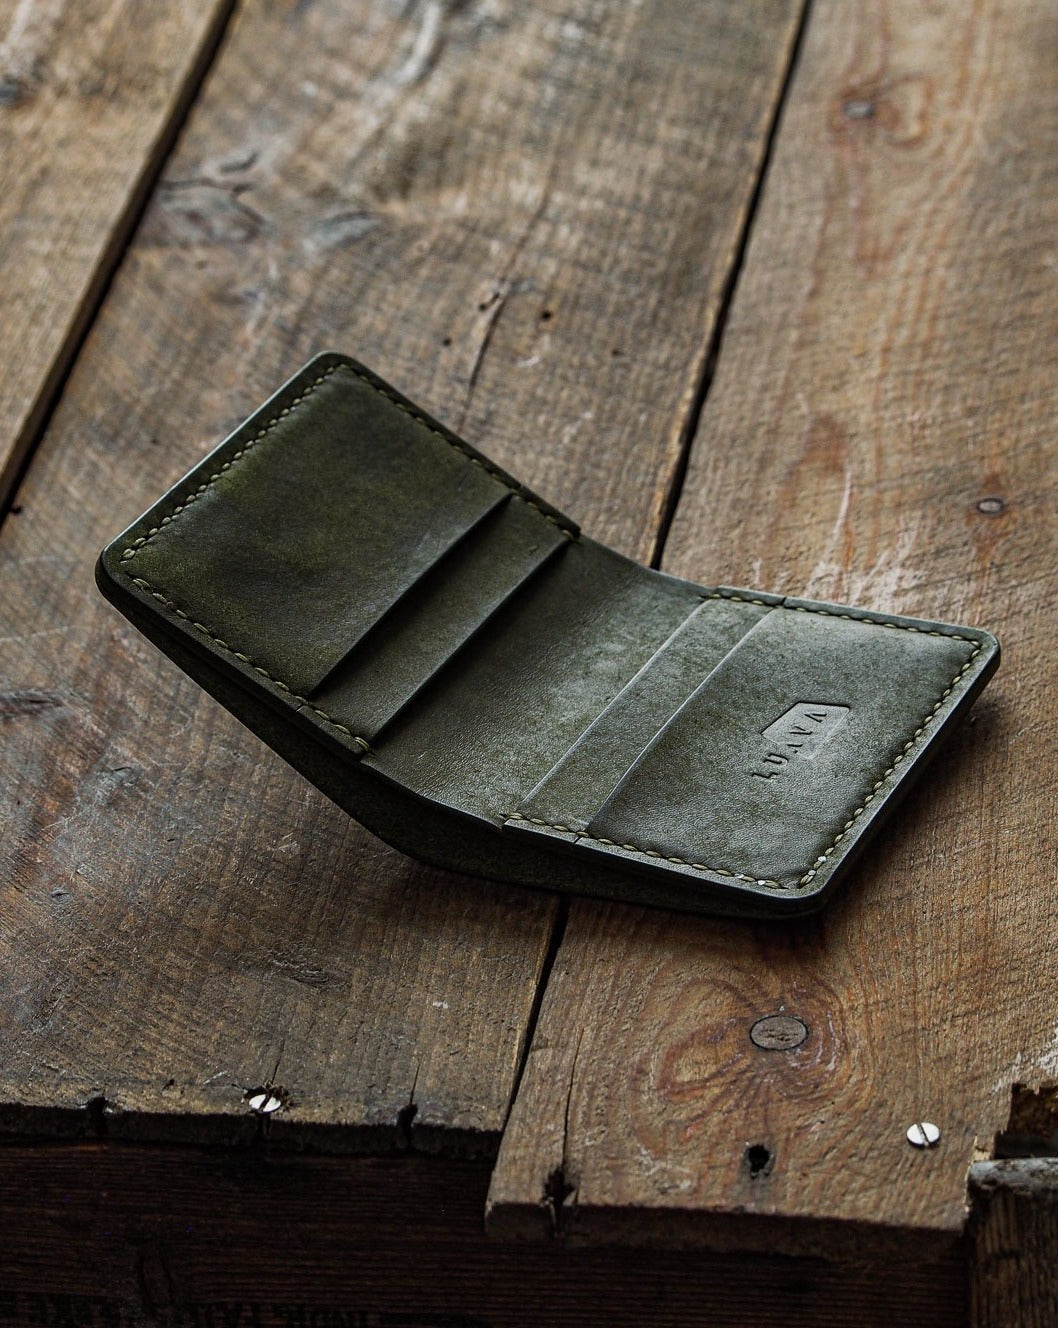 Luava handmade leather wallet NERO pine card holder cardholder handcrafted pueblo olive front open angle